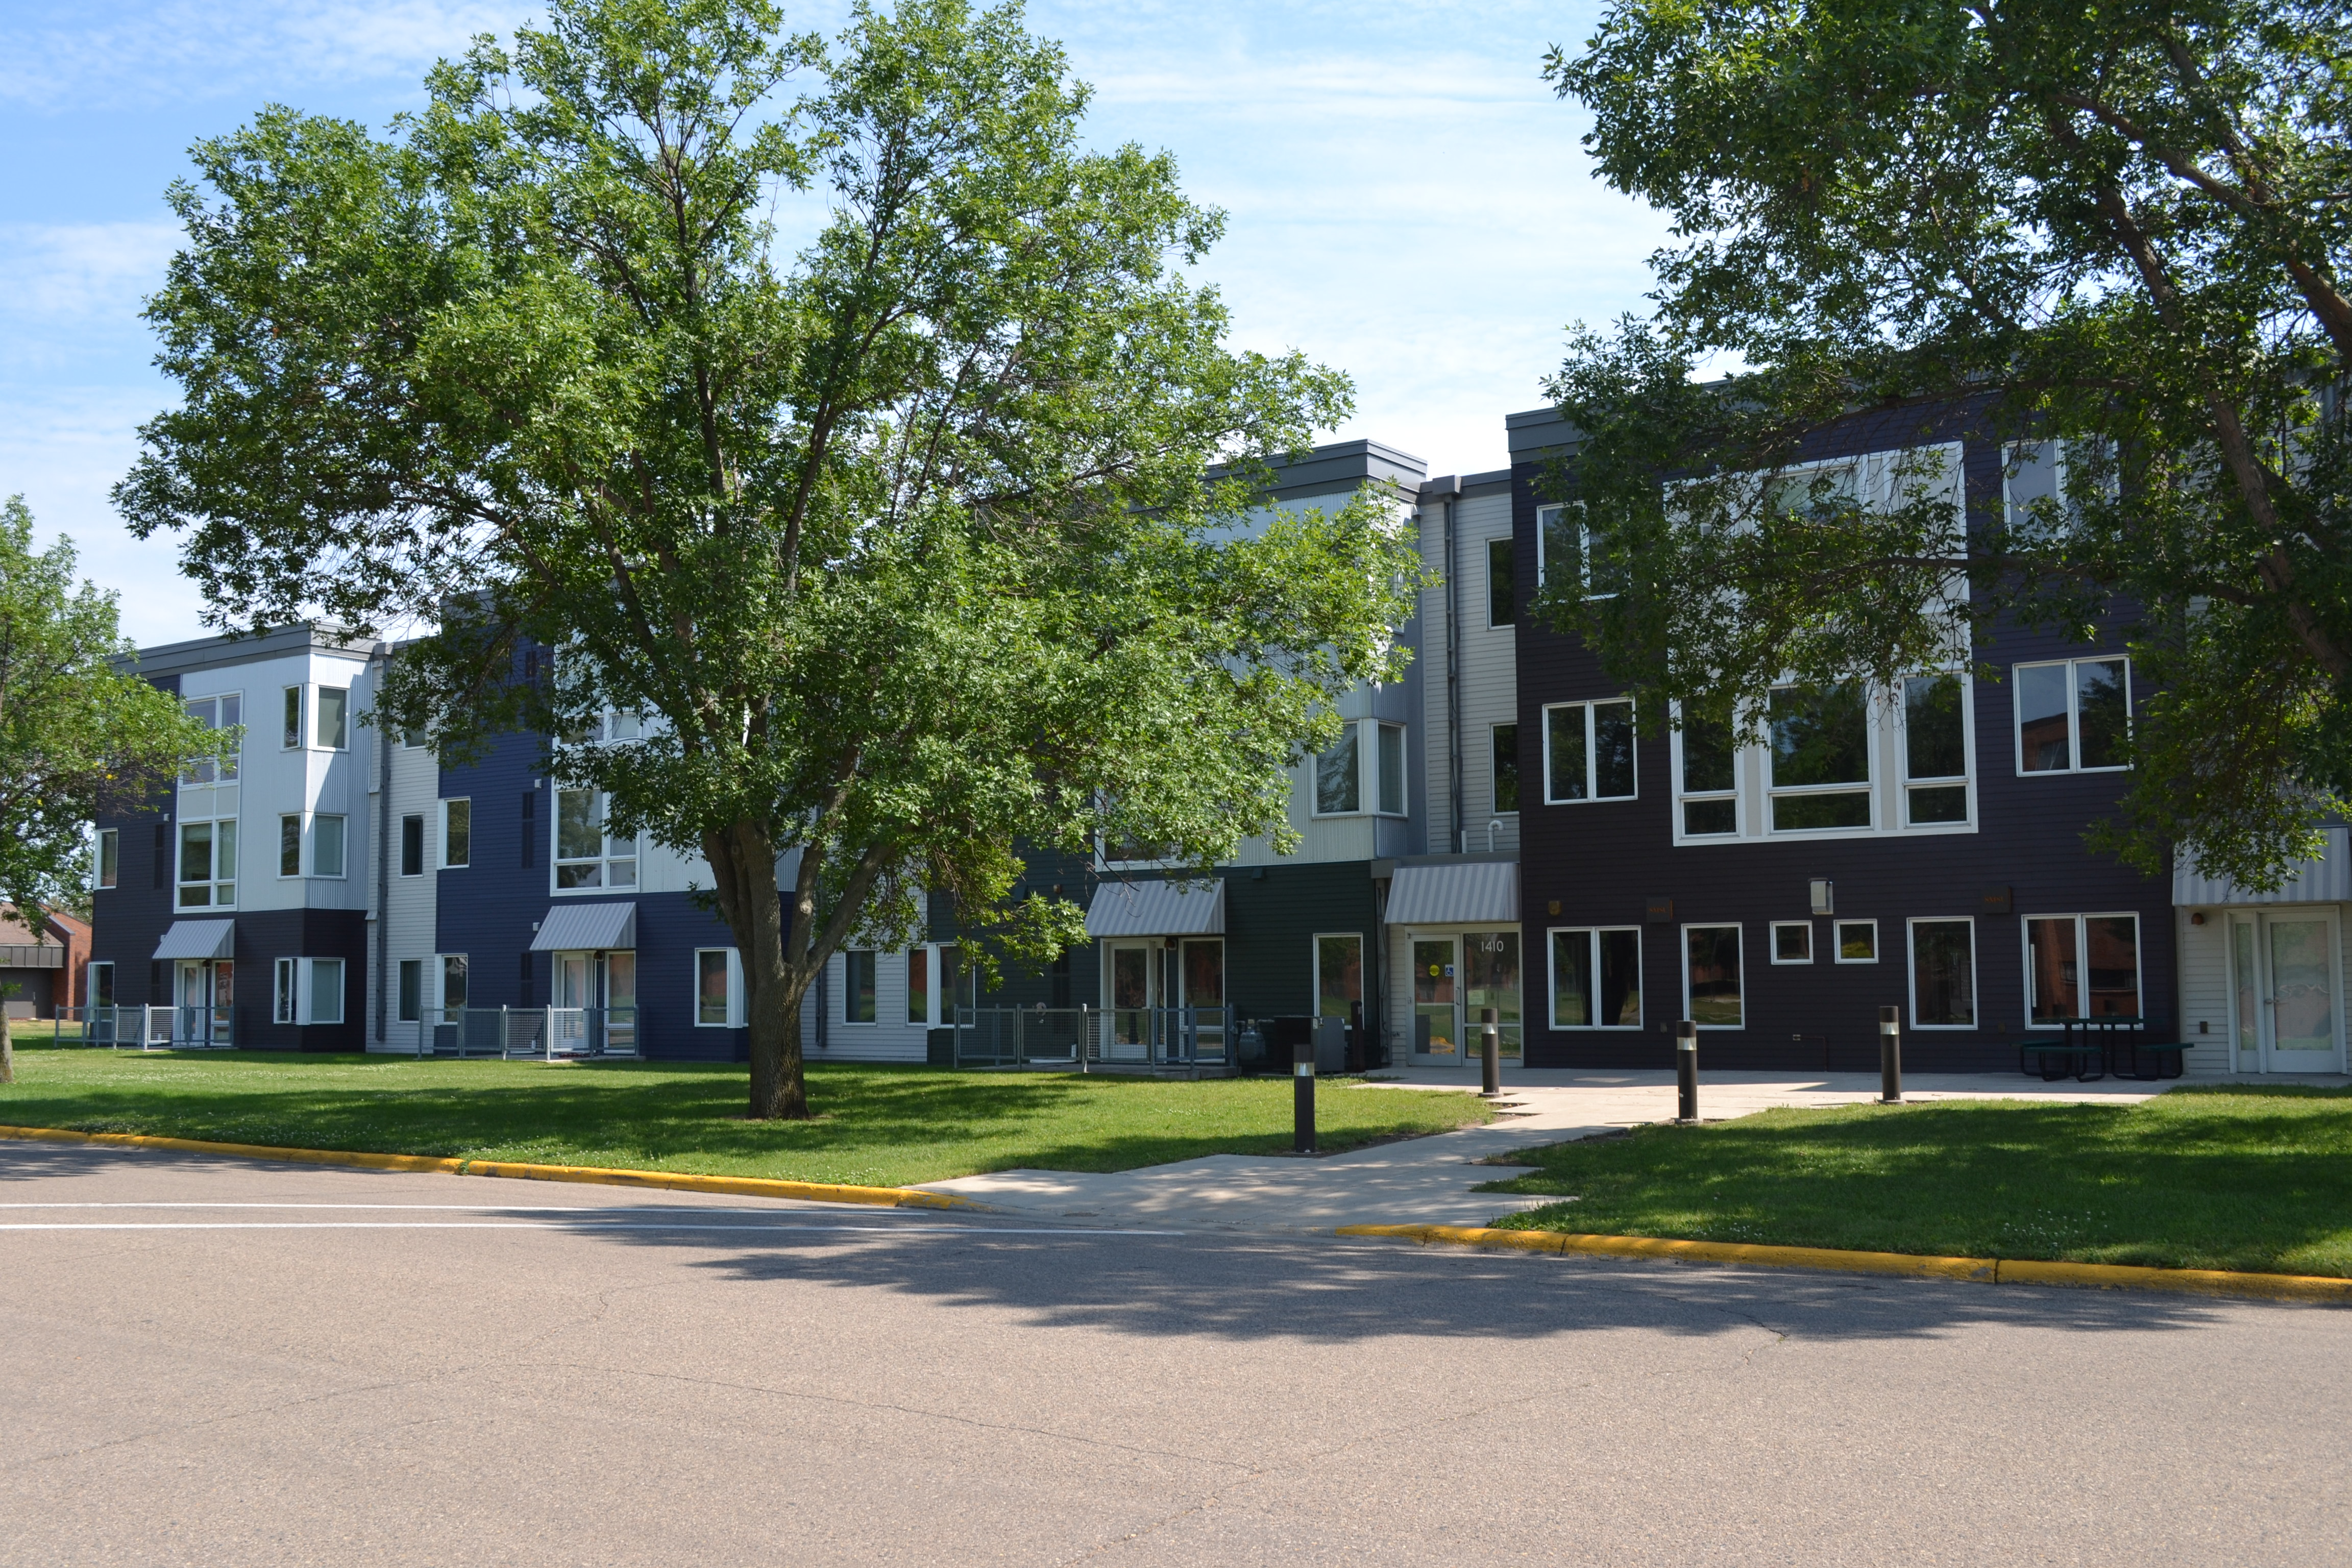 Picture of Foundation Residence Apartment building